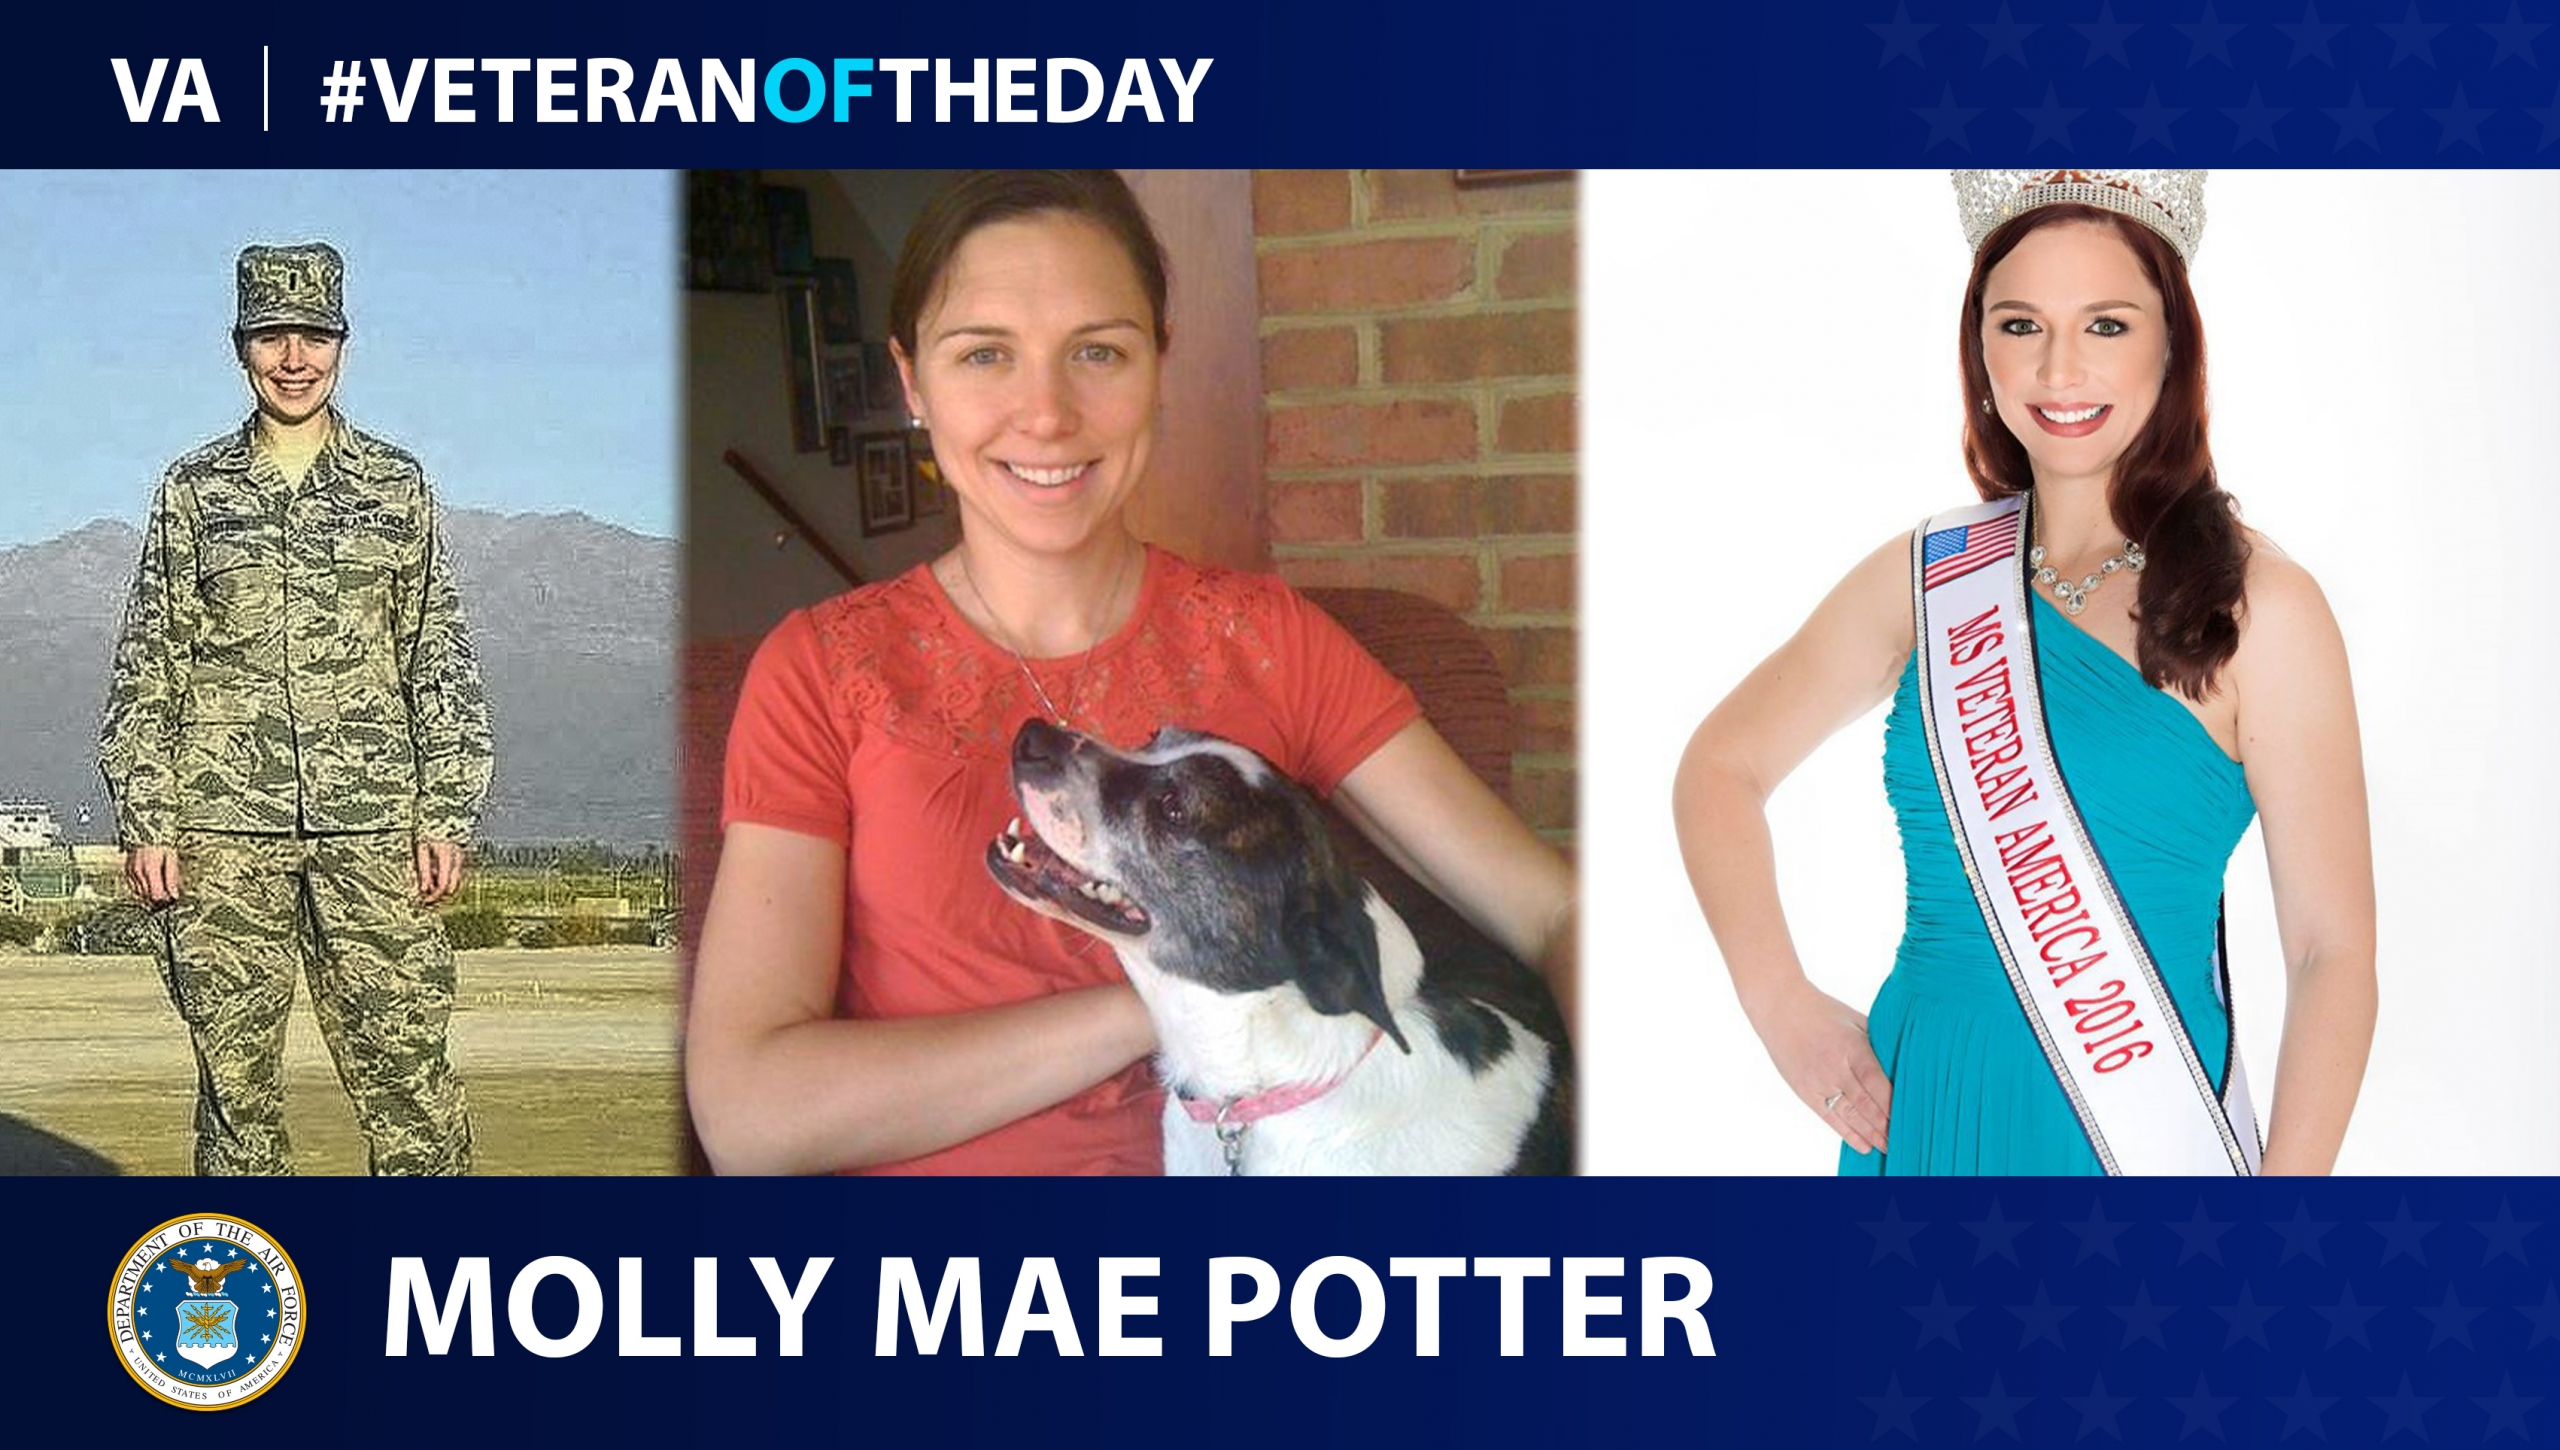 Air Force Veteran Molly Mae Potter is today's #VeteranOfTheDay.